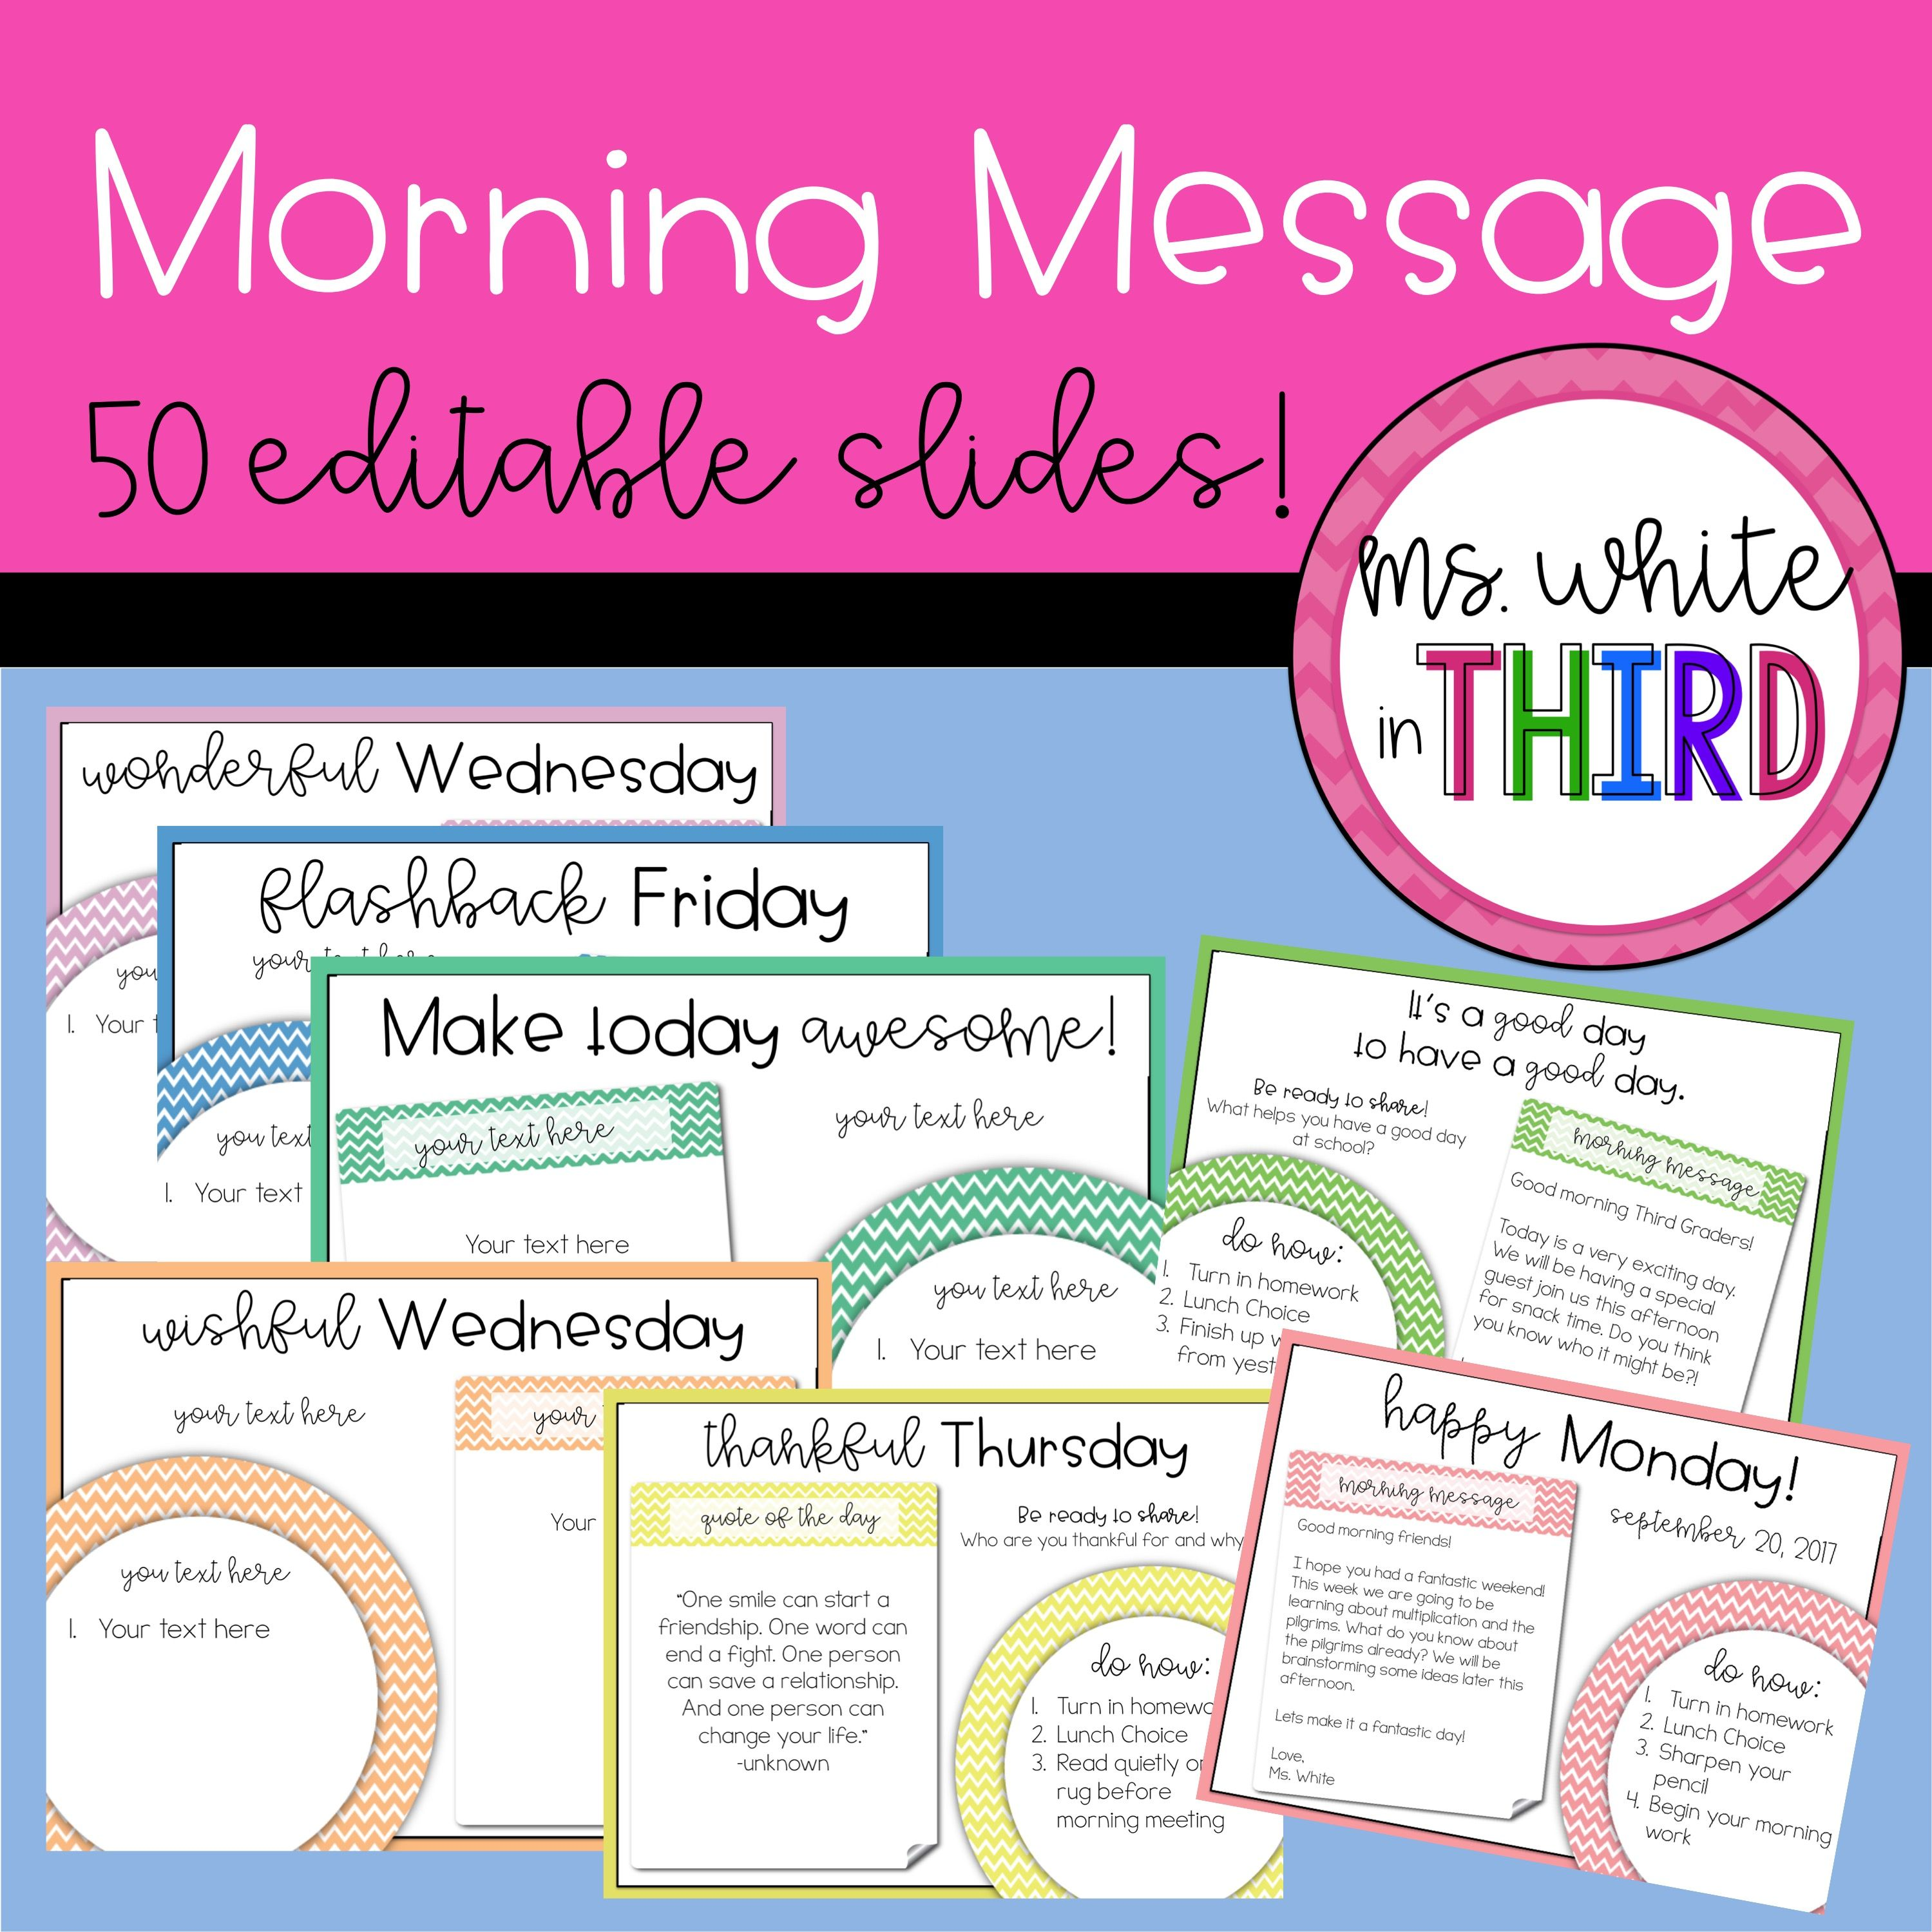 Morning Message (50 editable slides) | Ms  White In Third